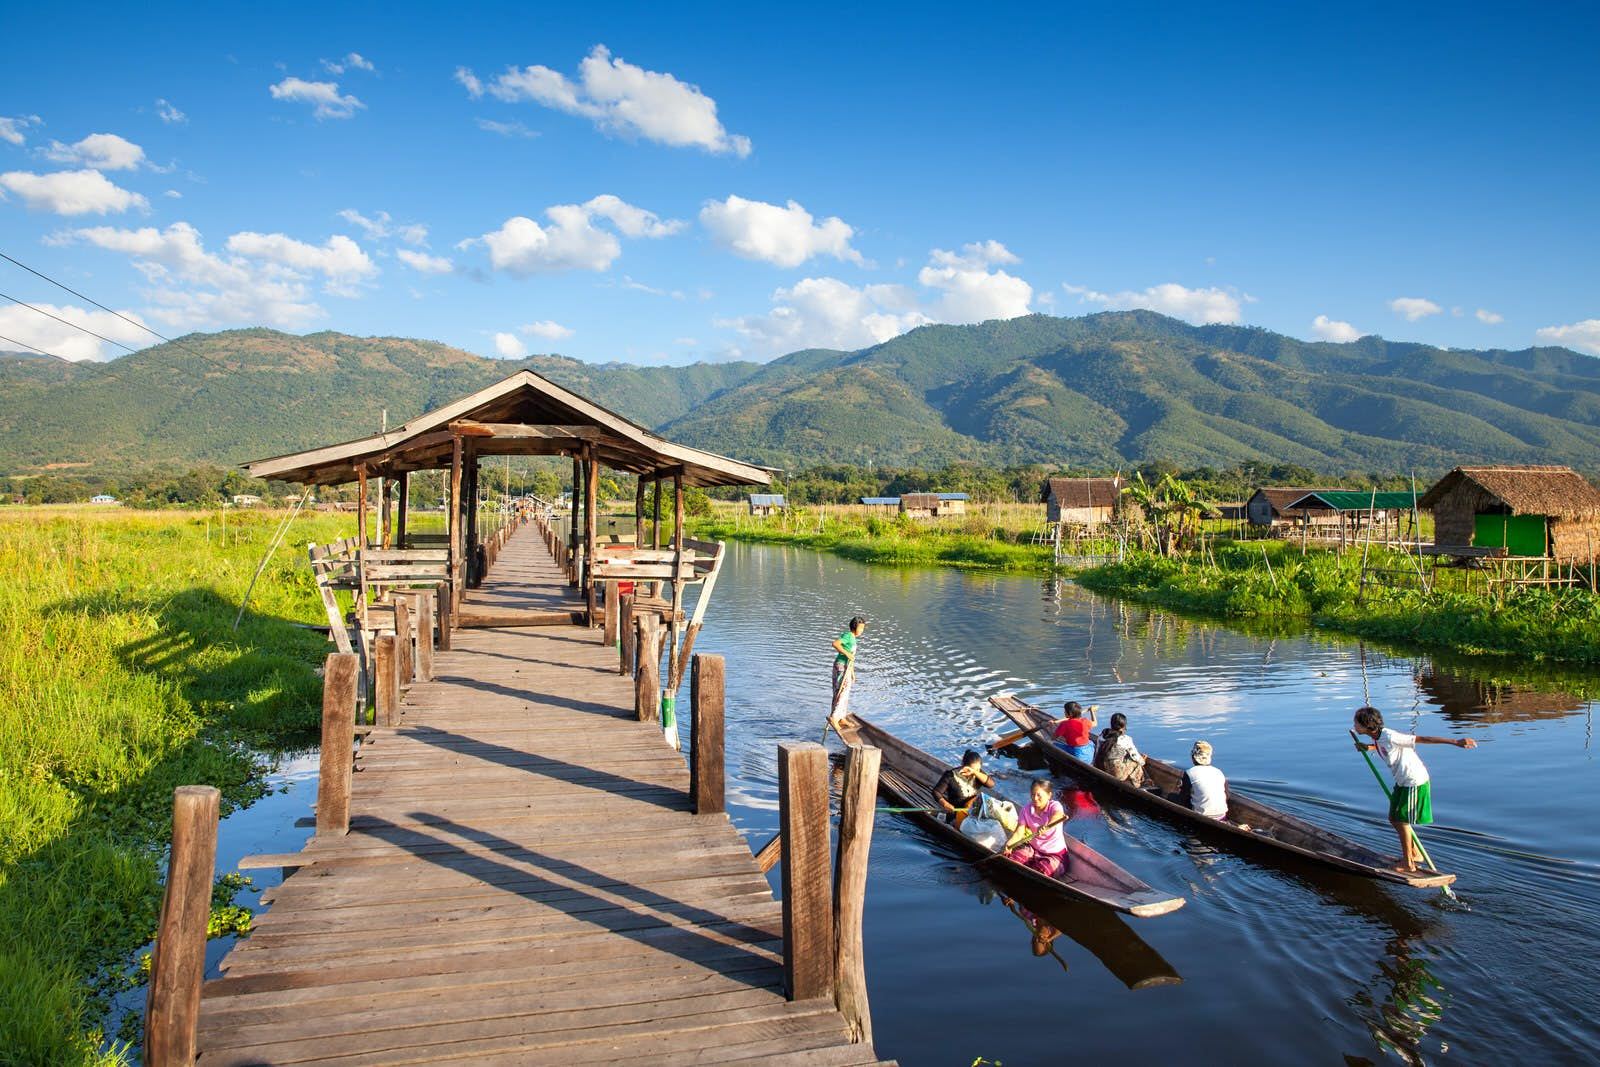 Myanmar's water world: exploring Inle Lake - Lonely Planet